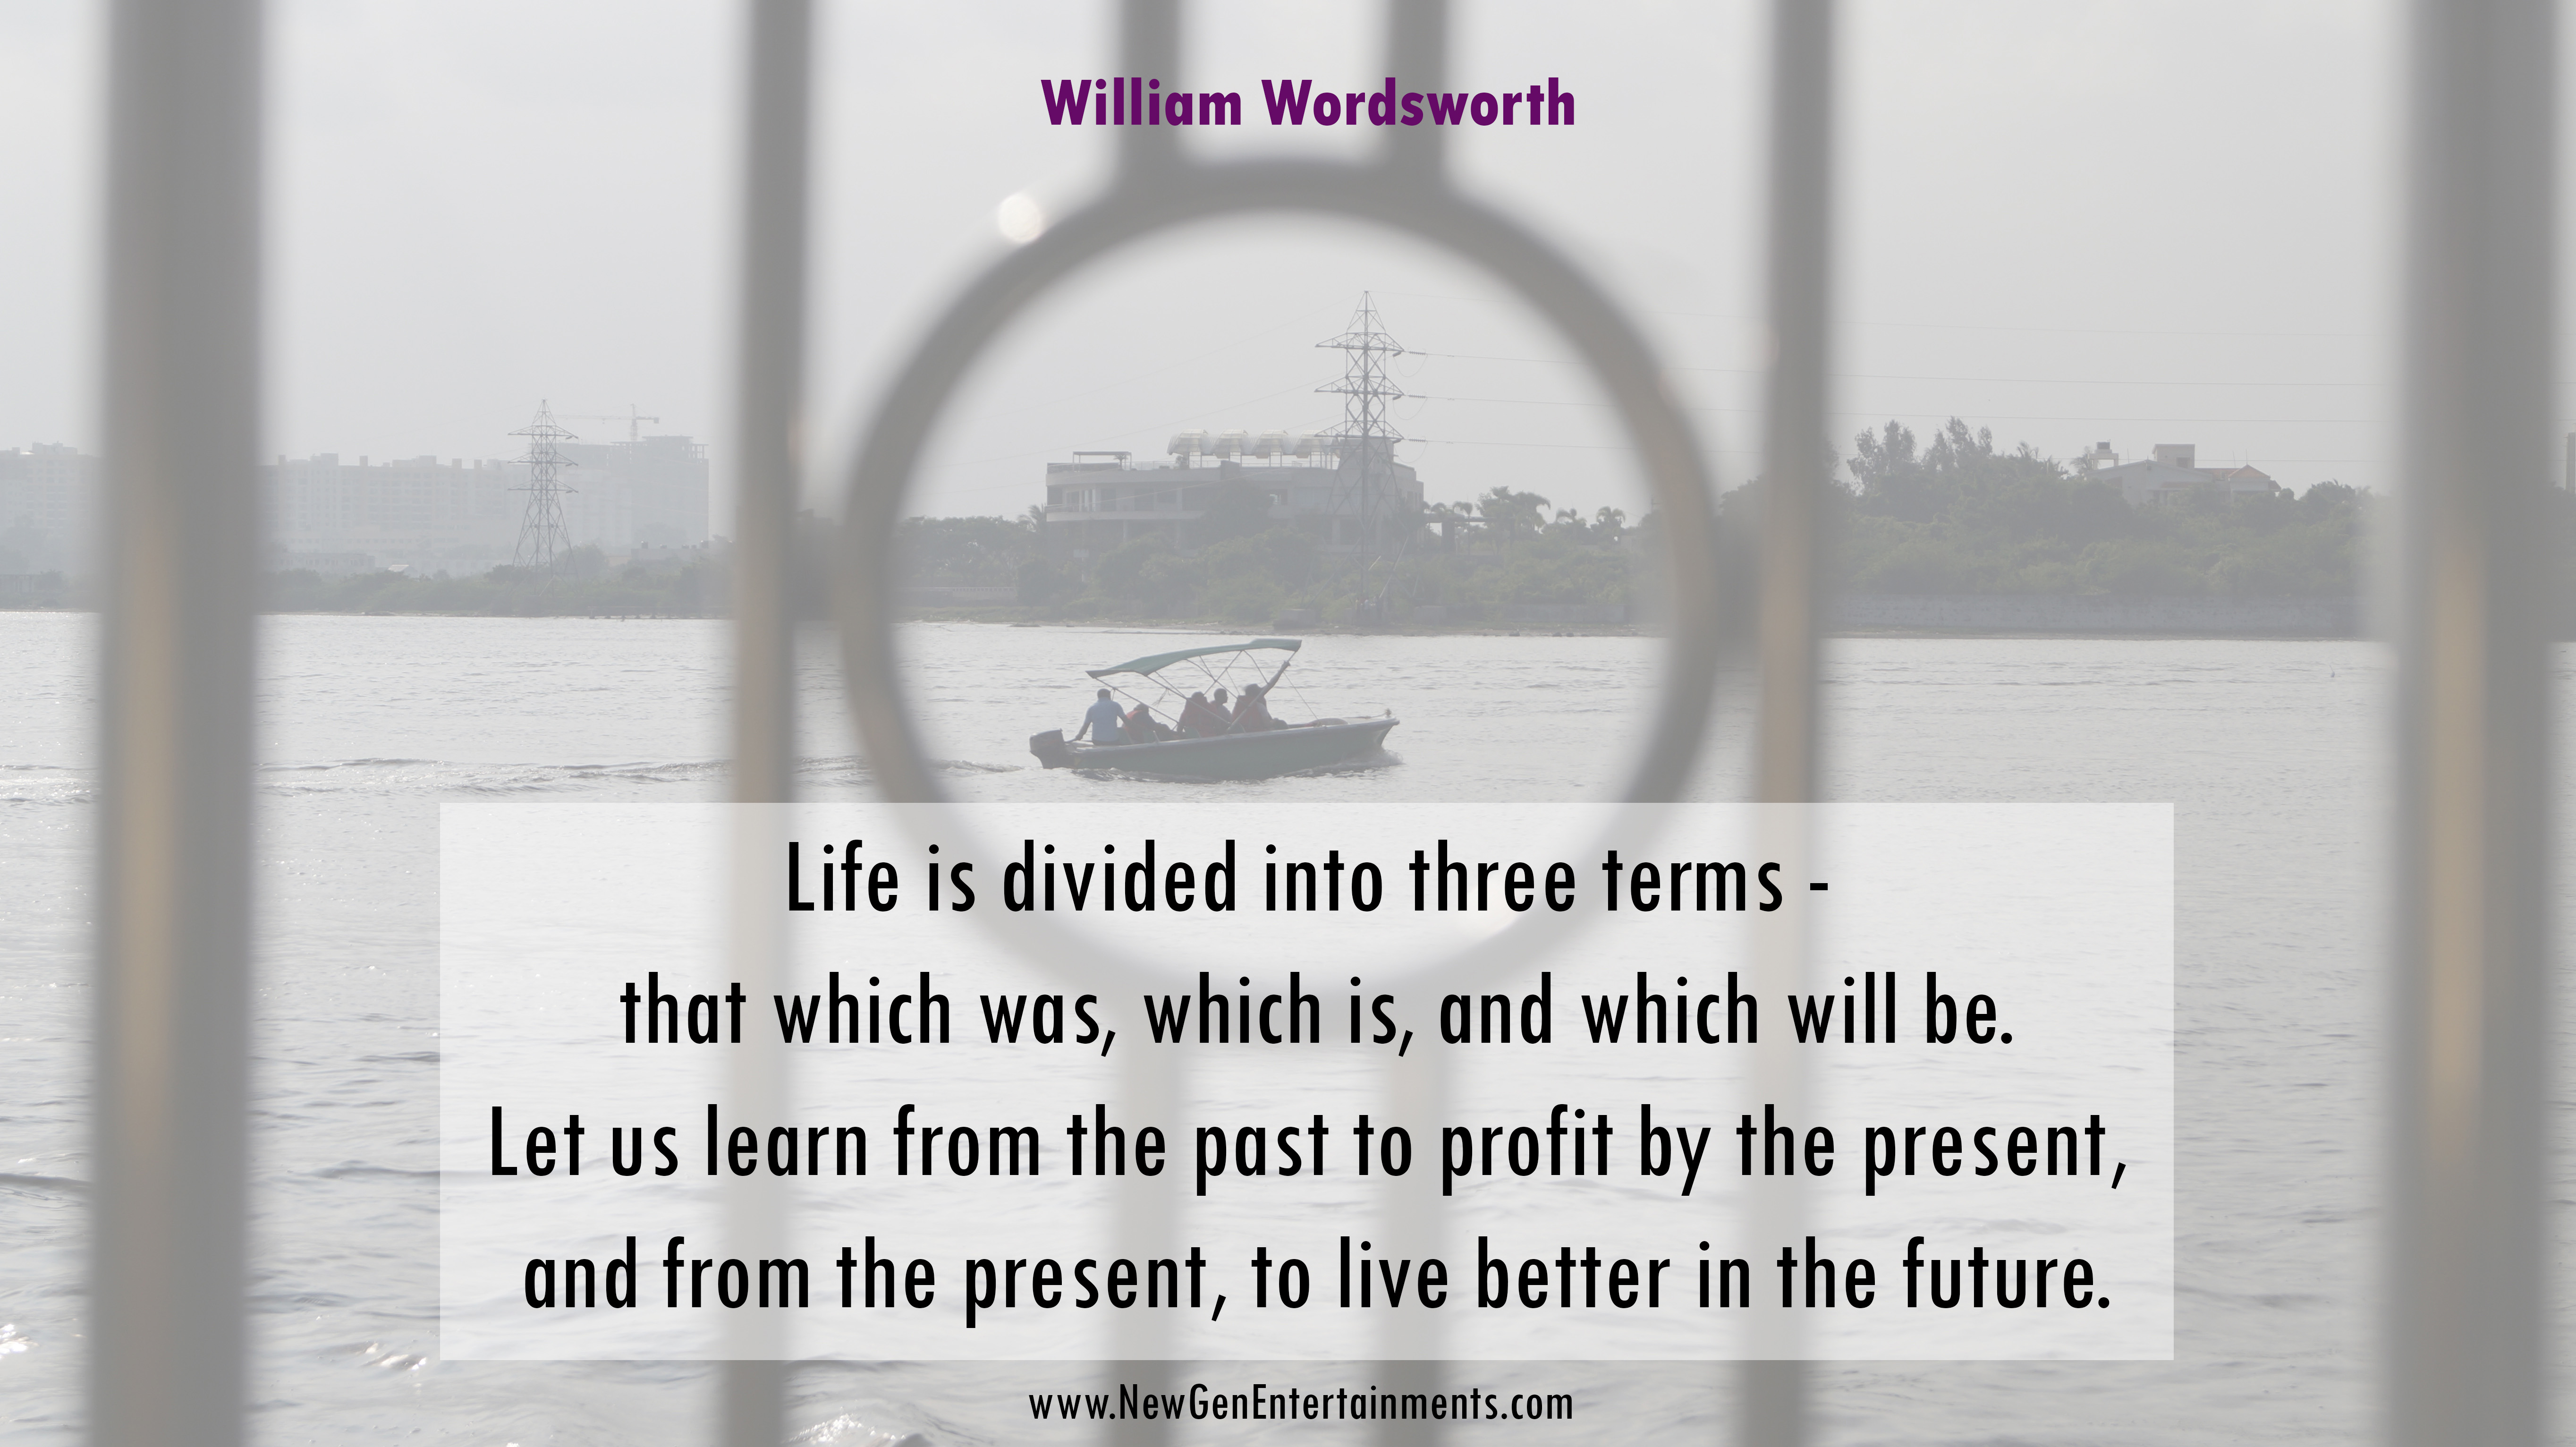 Life is divided into three terms that which was, which is, and which will be